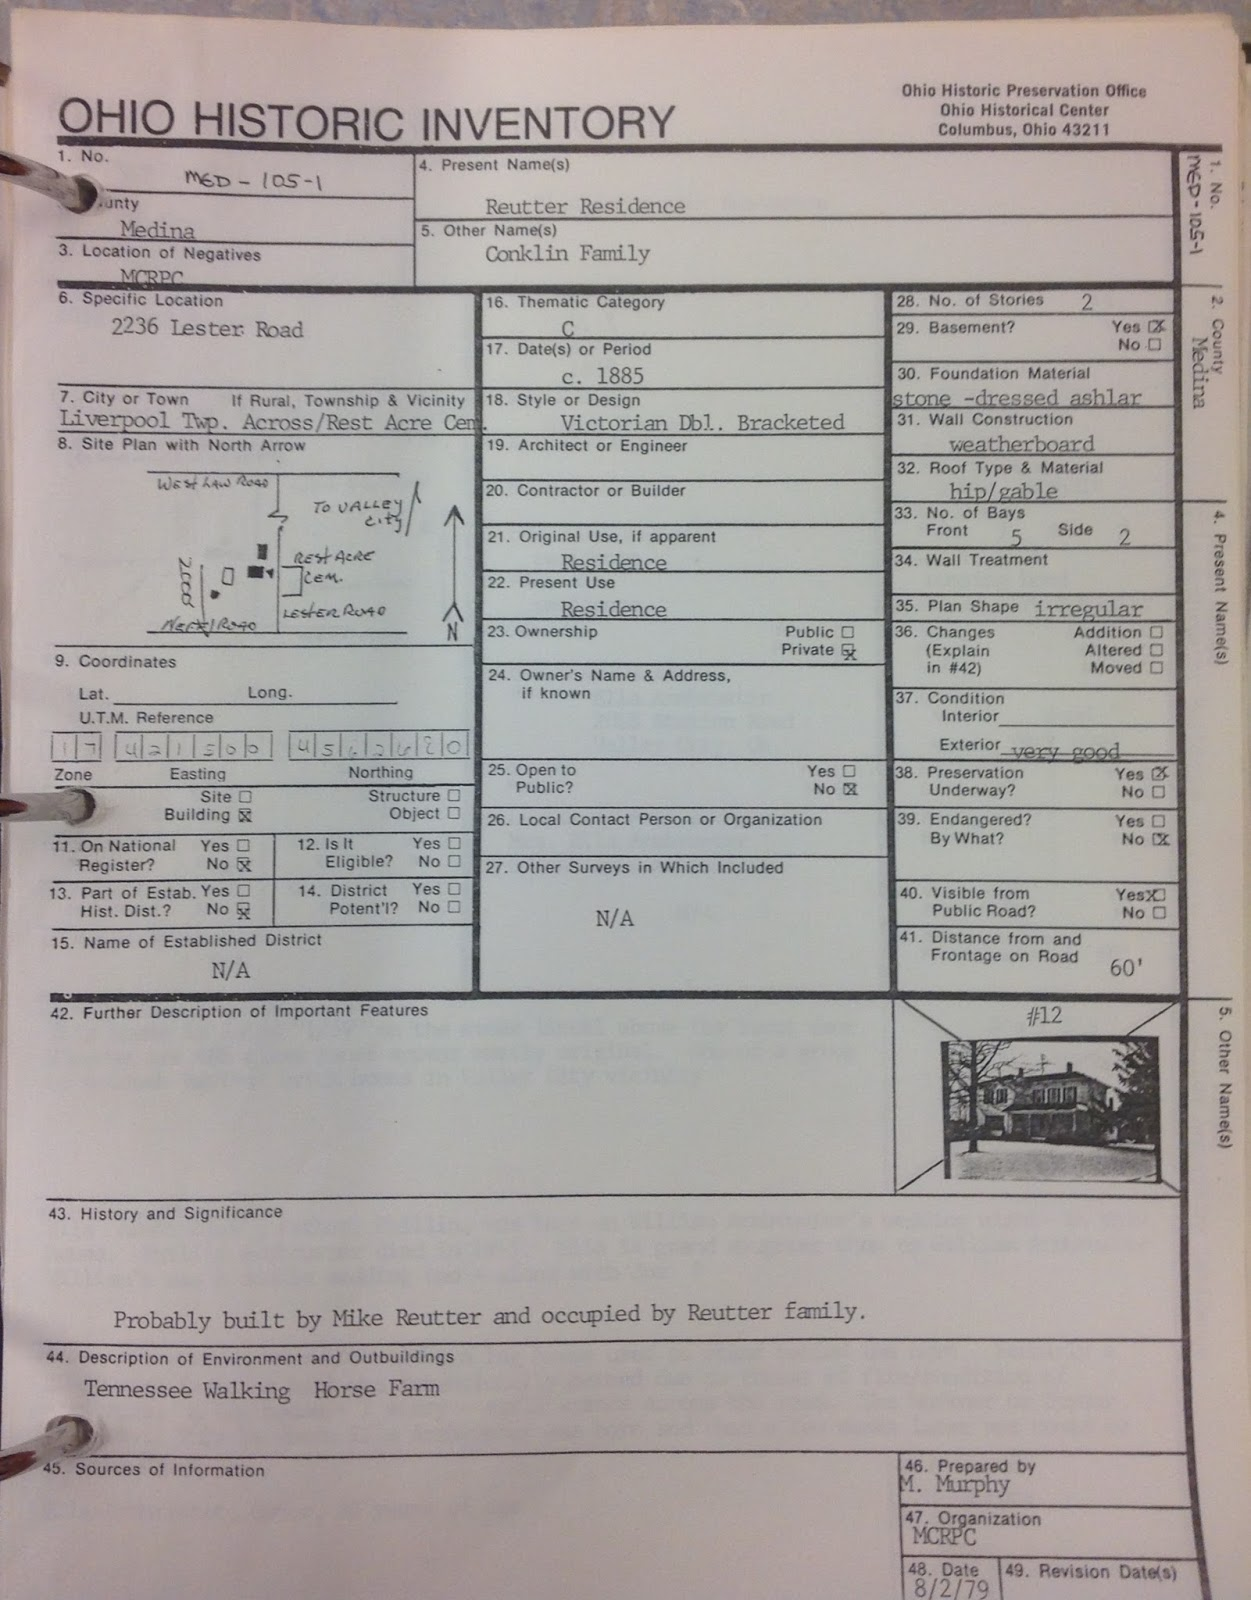 Mcdl genealogy march 2017 a sample sheet from the ohio historic inventory fandeluxe Choice Image